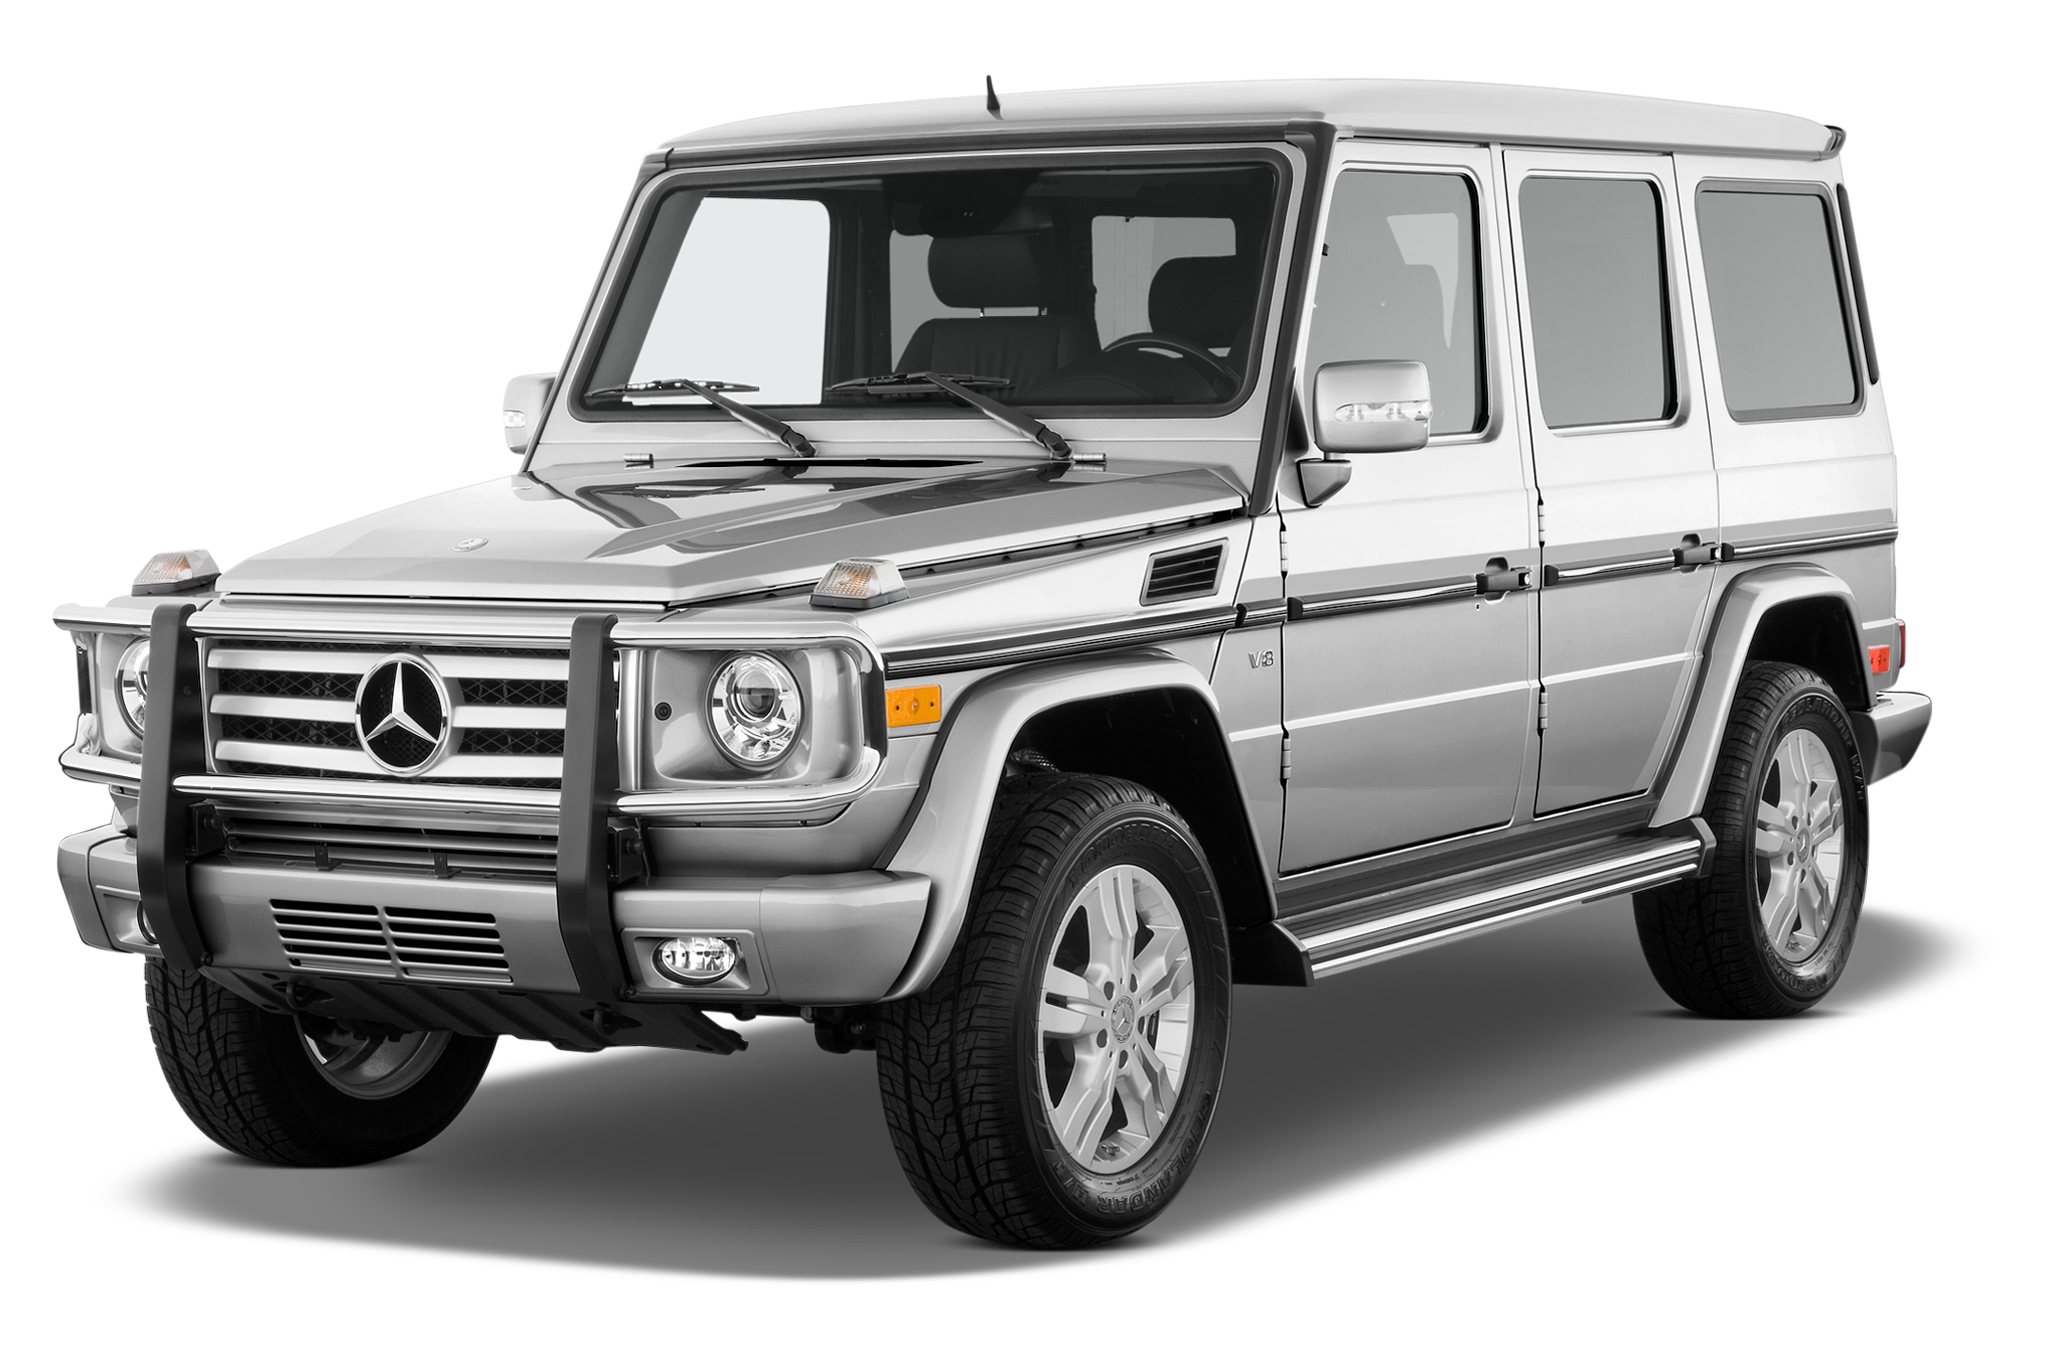 Mercedes-Benz G-klasse II (W463) Restyling 4 2015 - now SUV 5 door #7